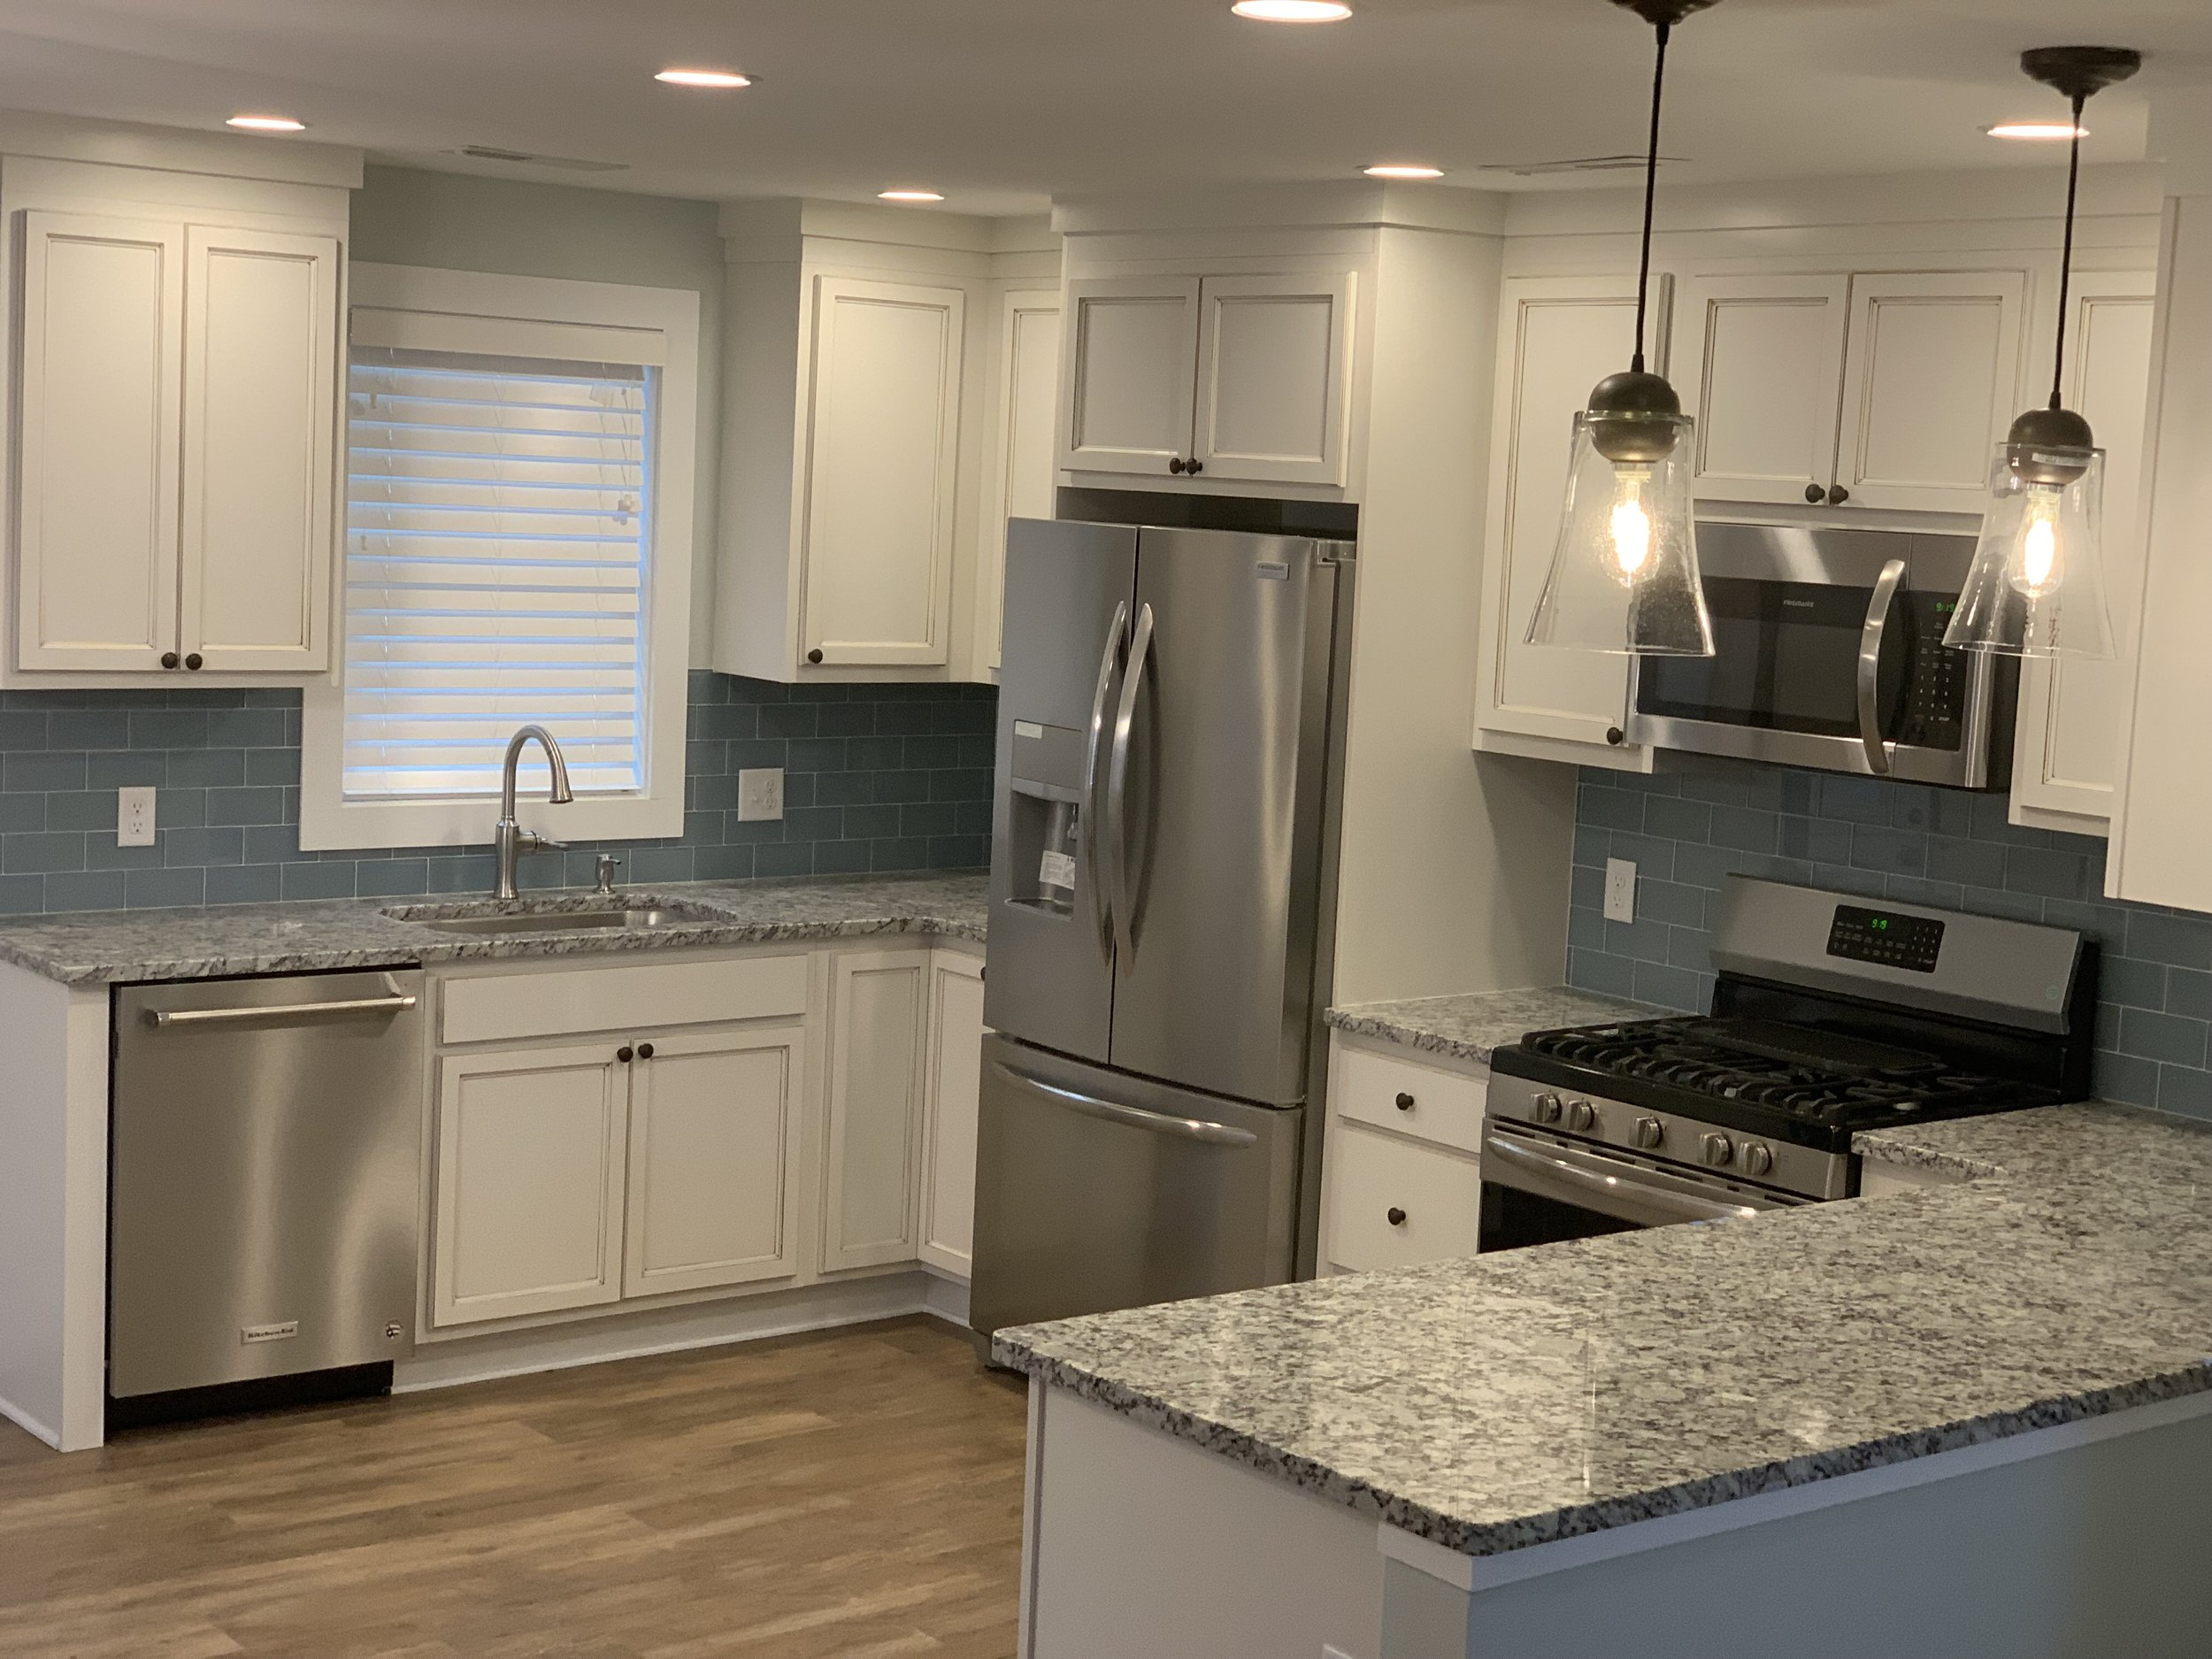 Kitchen Remodel- West Ashley, South Carolina